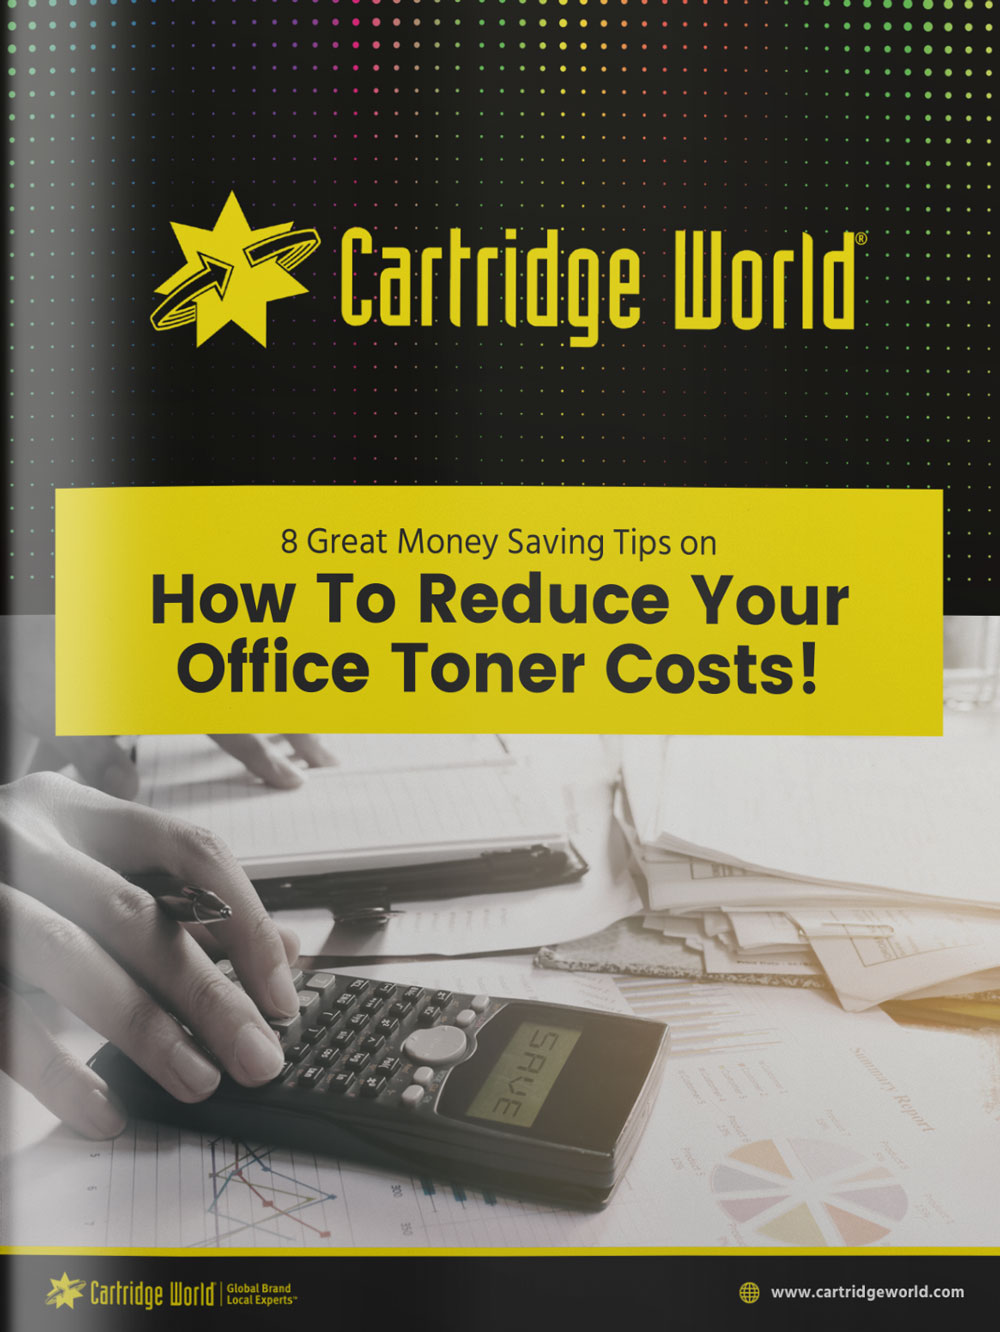 8 Great Money Saving Tips on How to Reduce Your Office Toner Costs